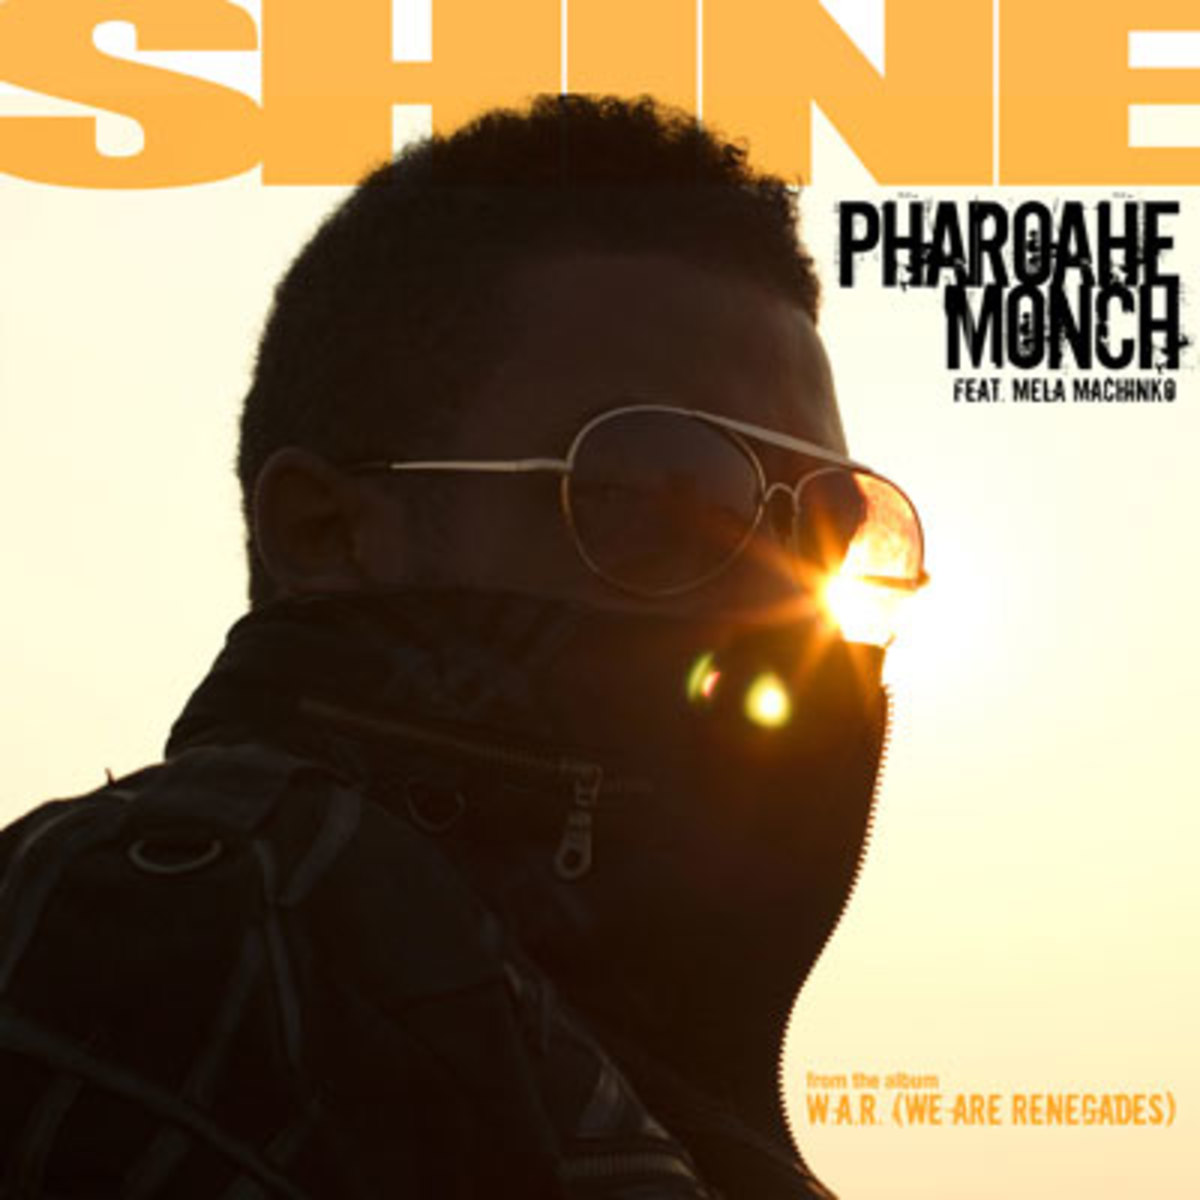 pharoahemonch-shine.jpg